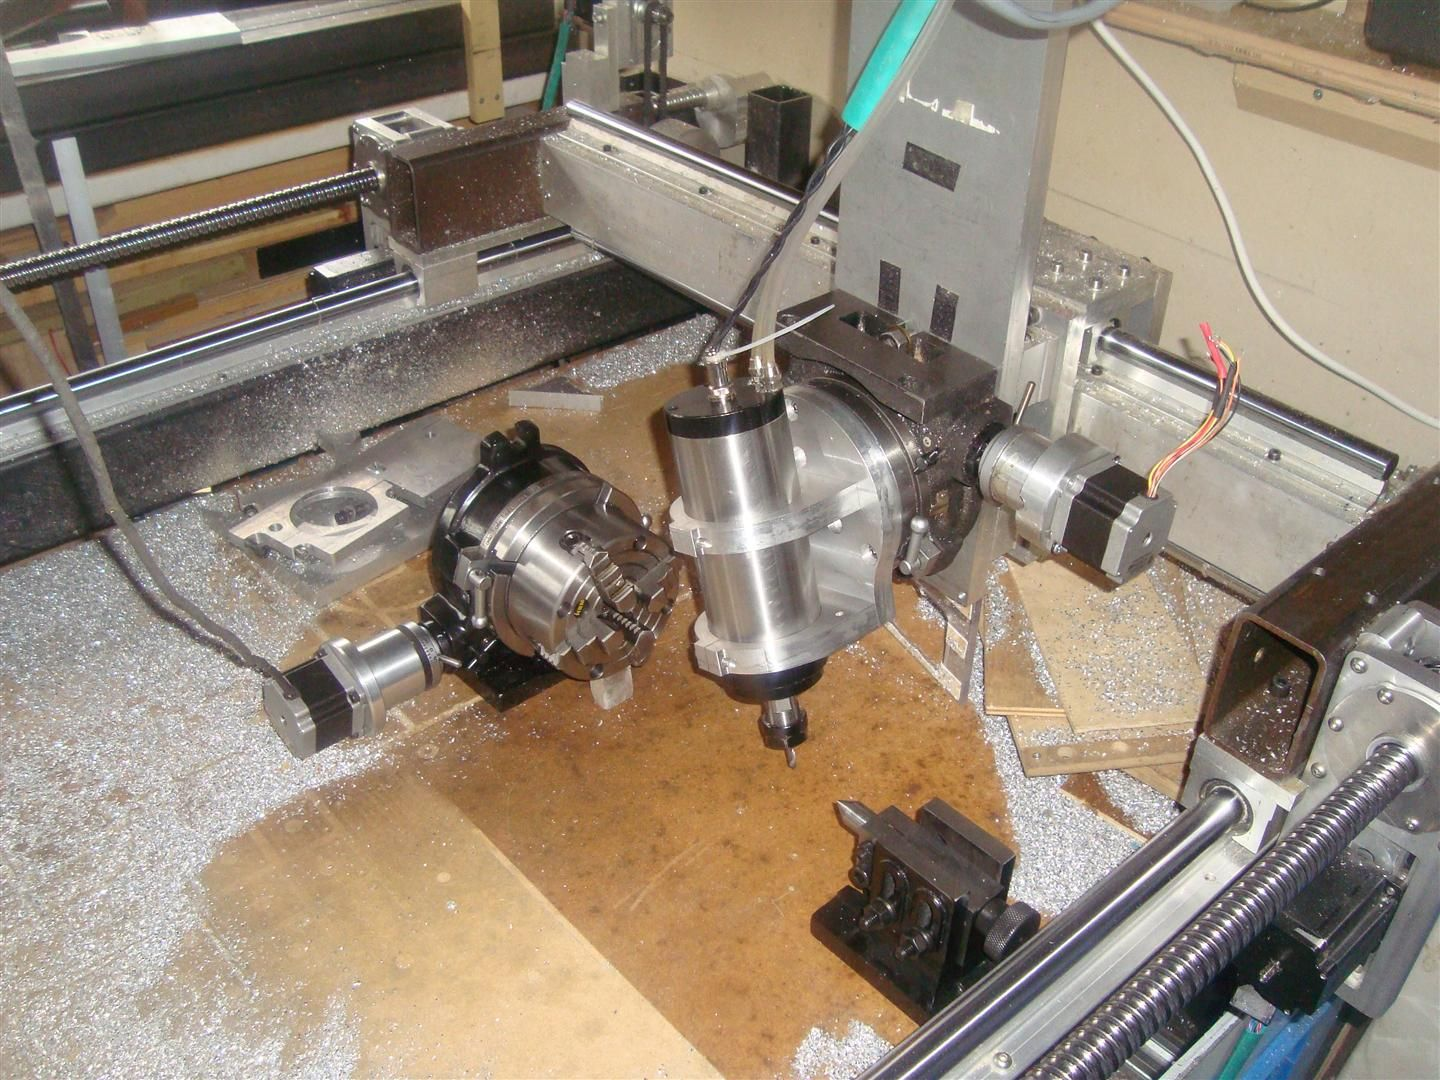 So what can I do with this     5-Axis    DIY CNC MILLS and